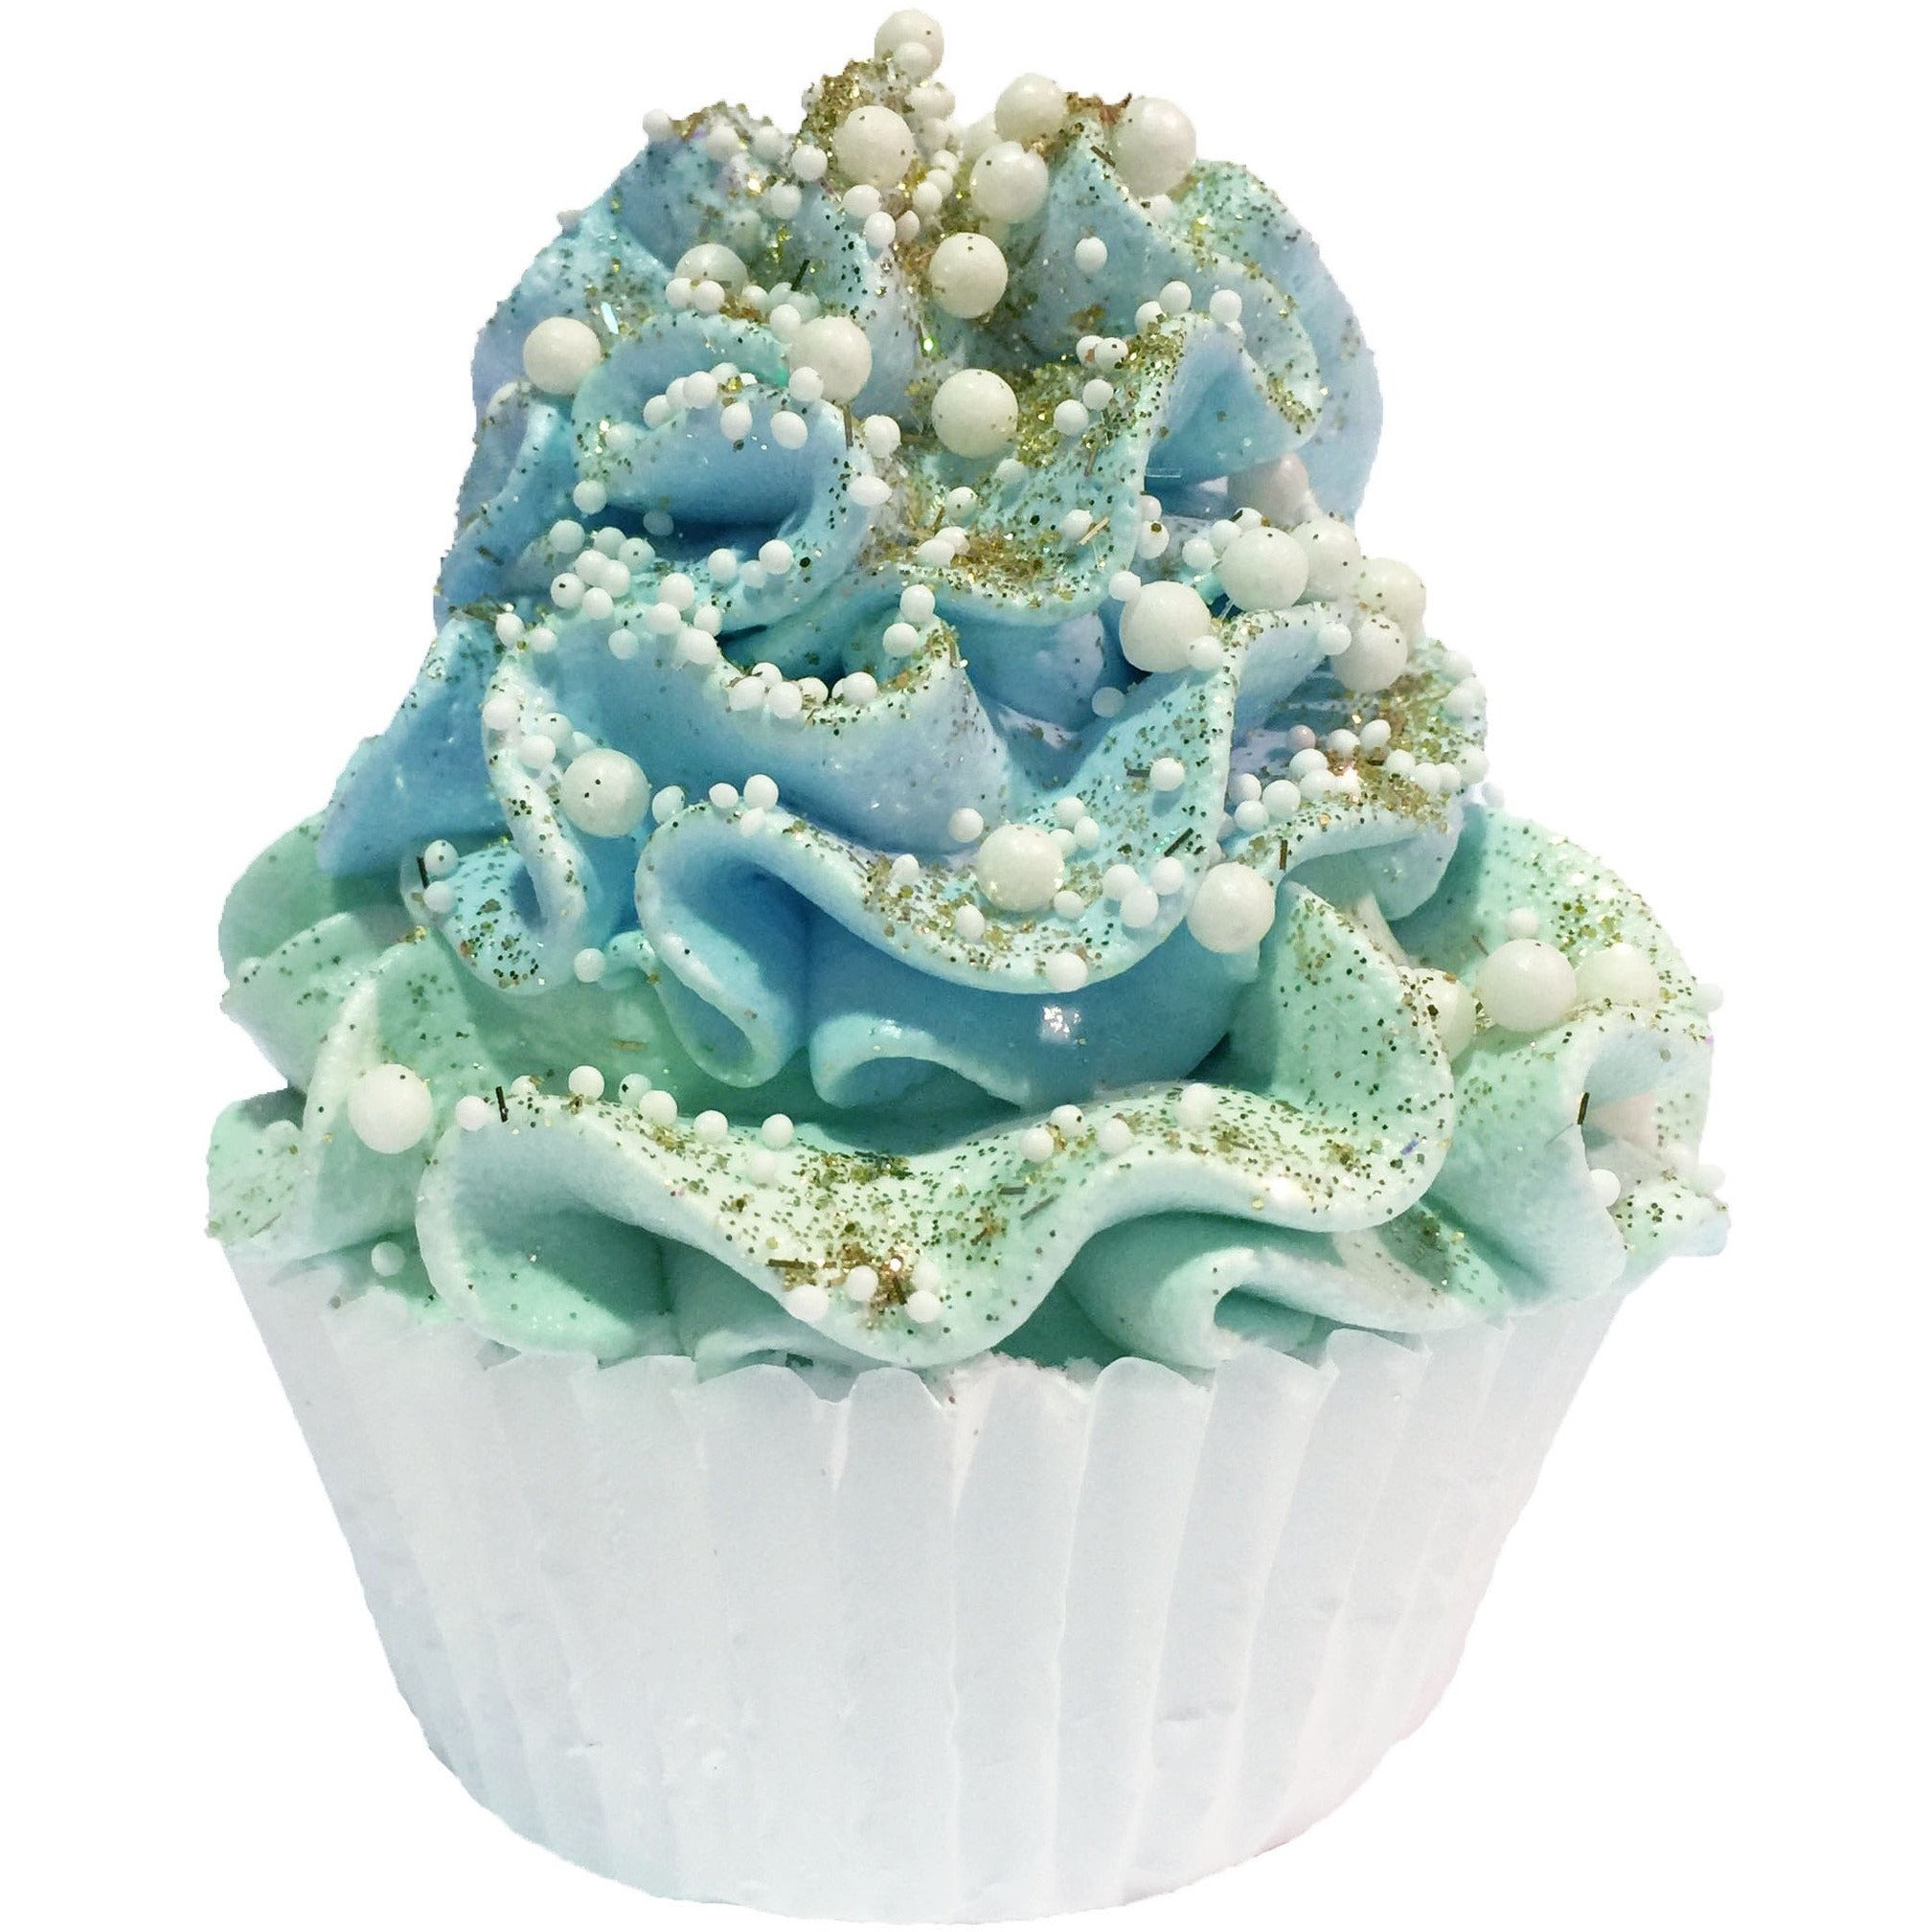 Feeling Smitten Cupcake Mini Bath Bomb